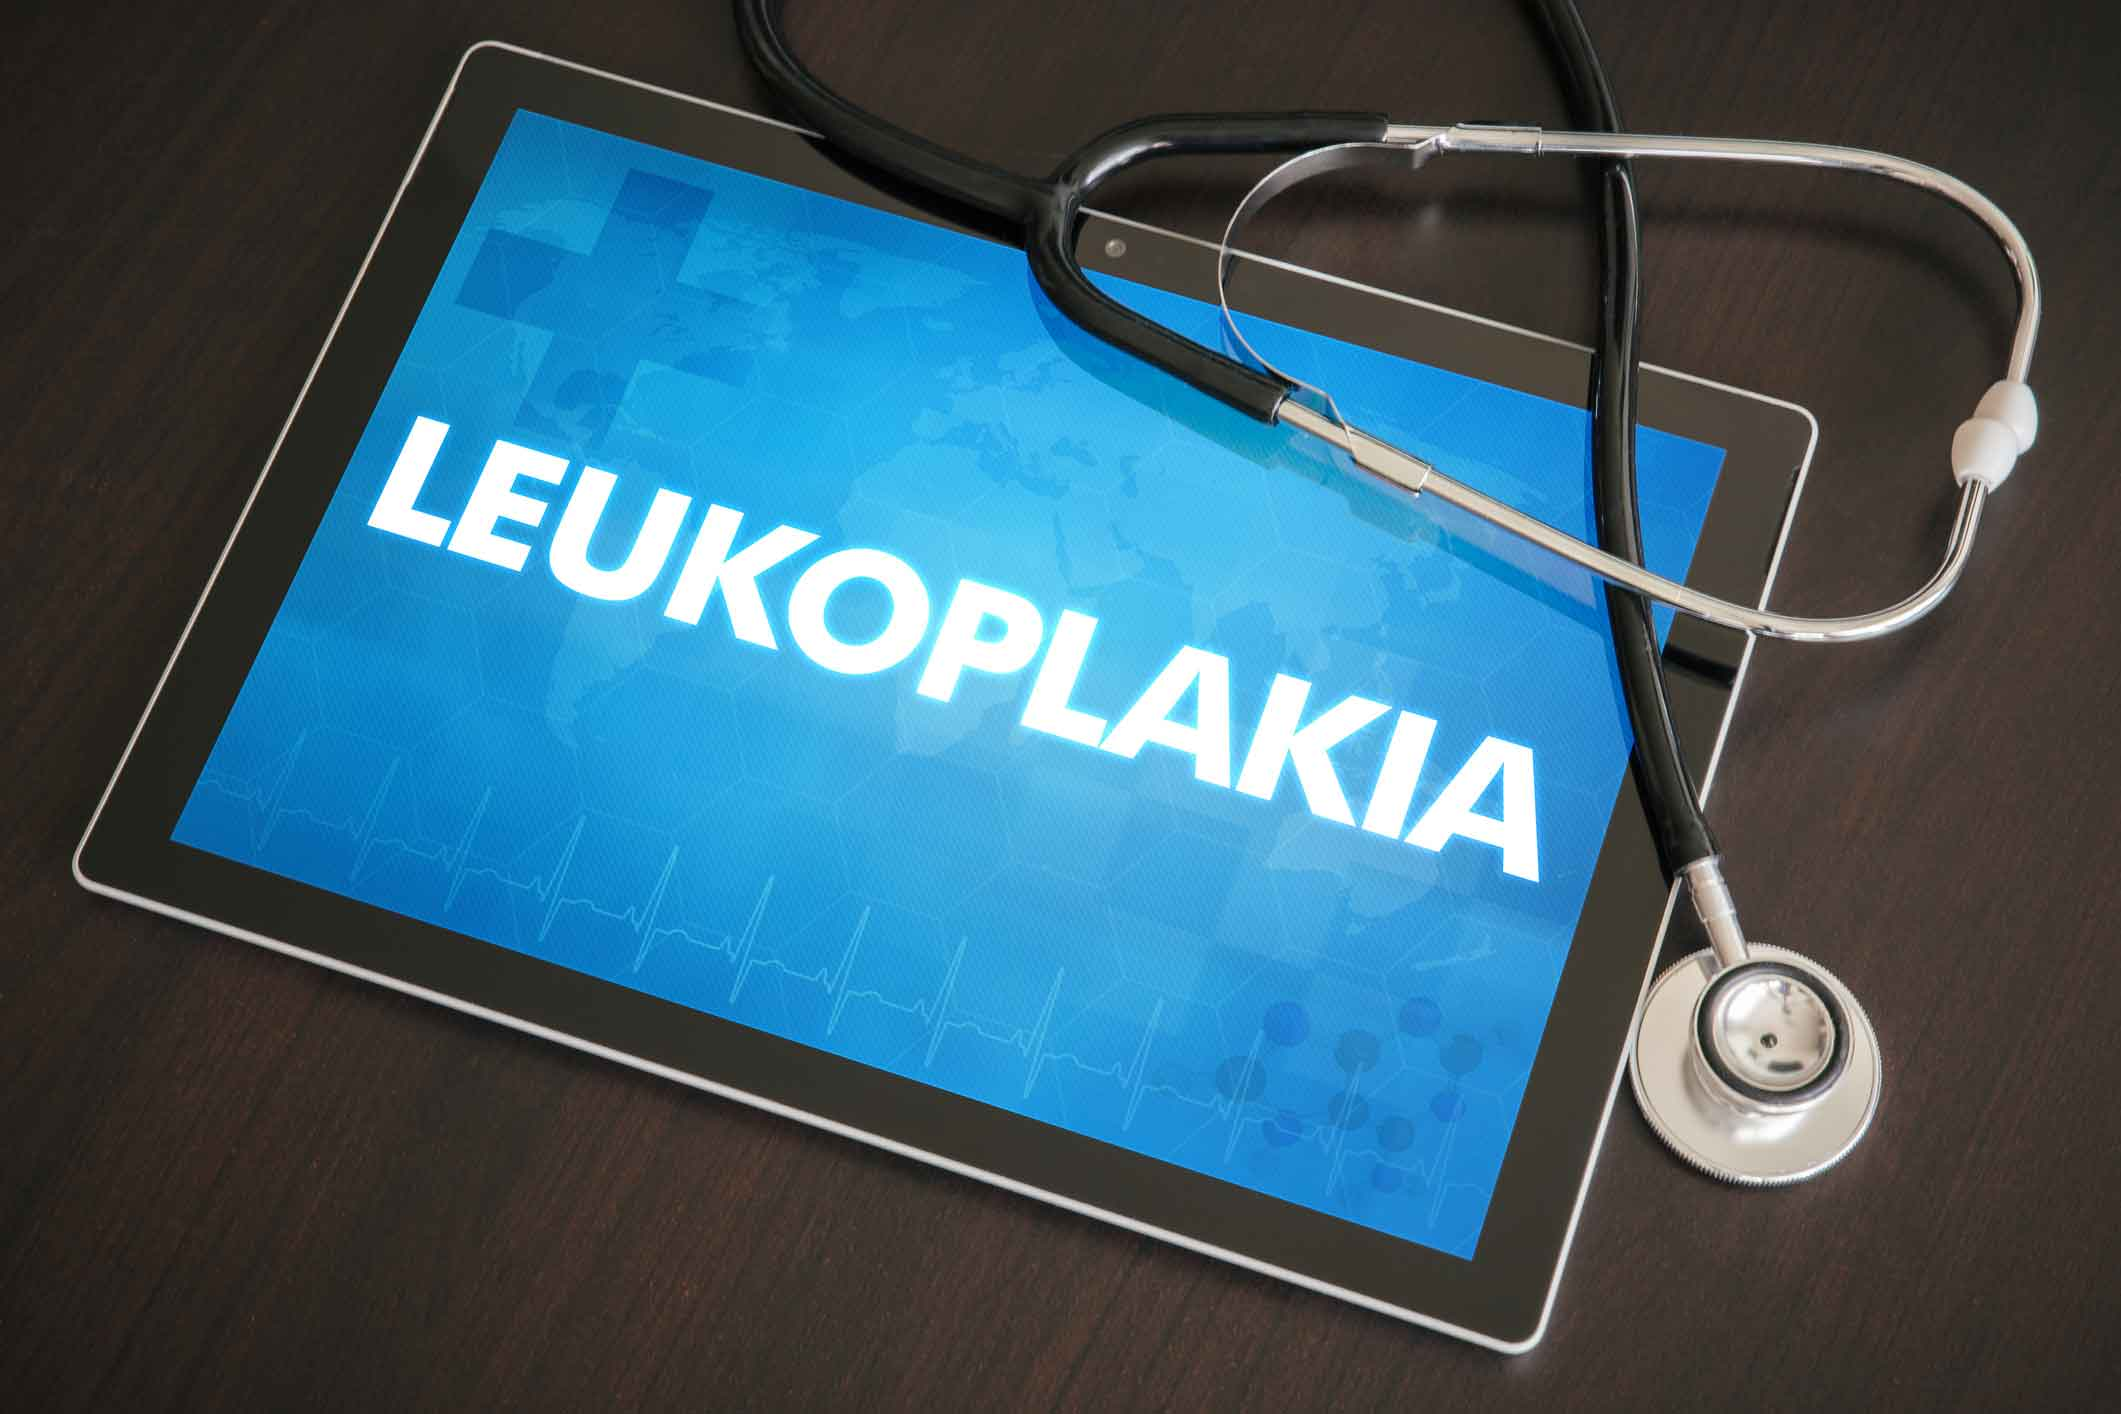 What Is Leukoplakia: Symptoms, Causes, and How to Treat It